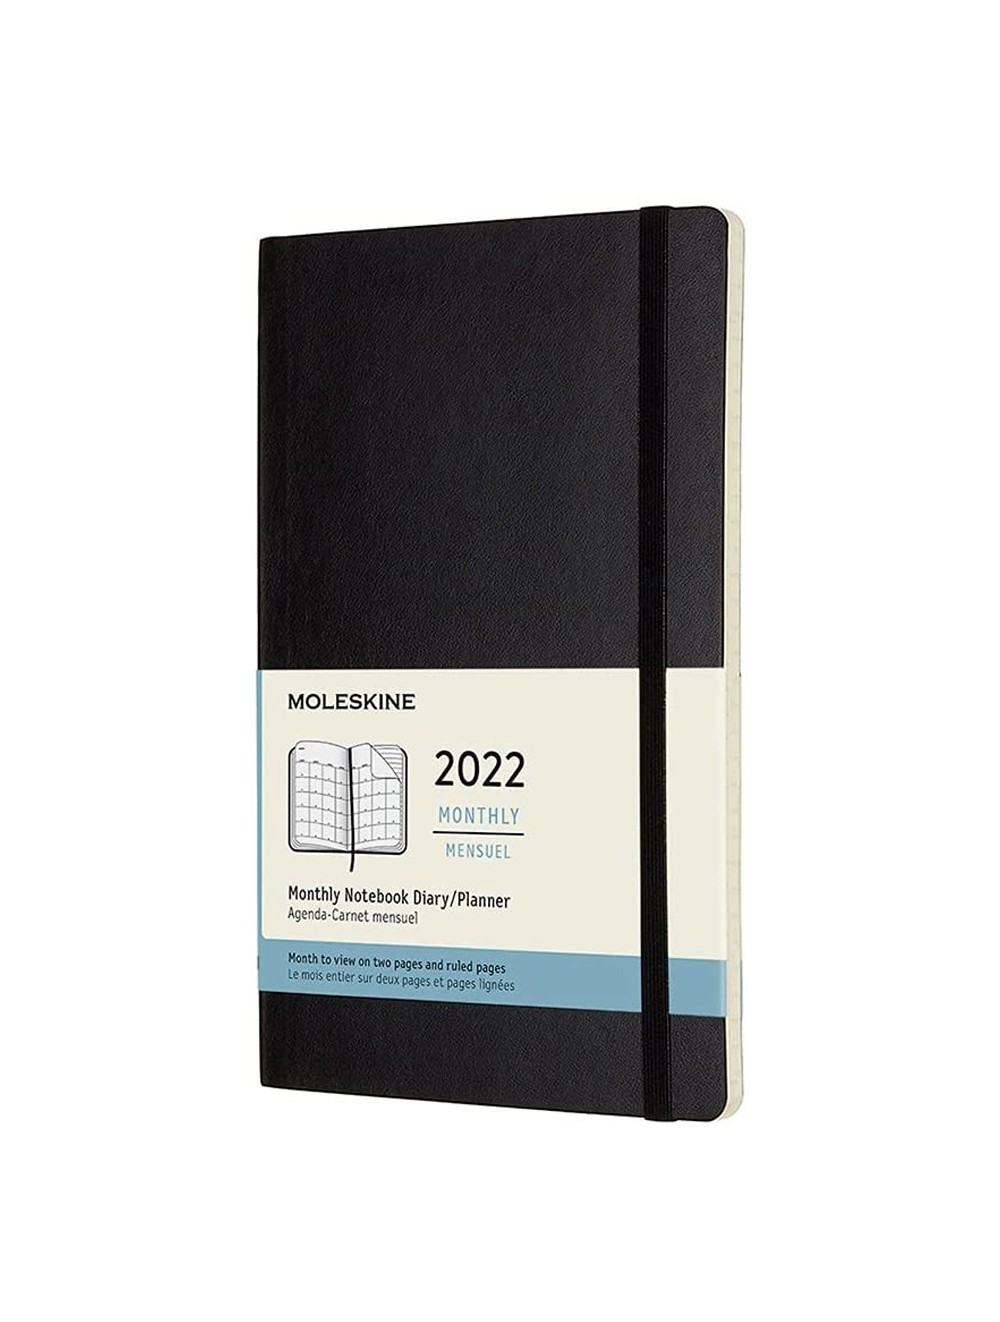 MOLESKINE MONTHLY PLANNER 2022 - LARGE SIZE